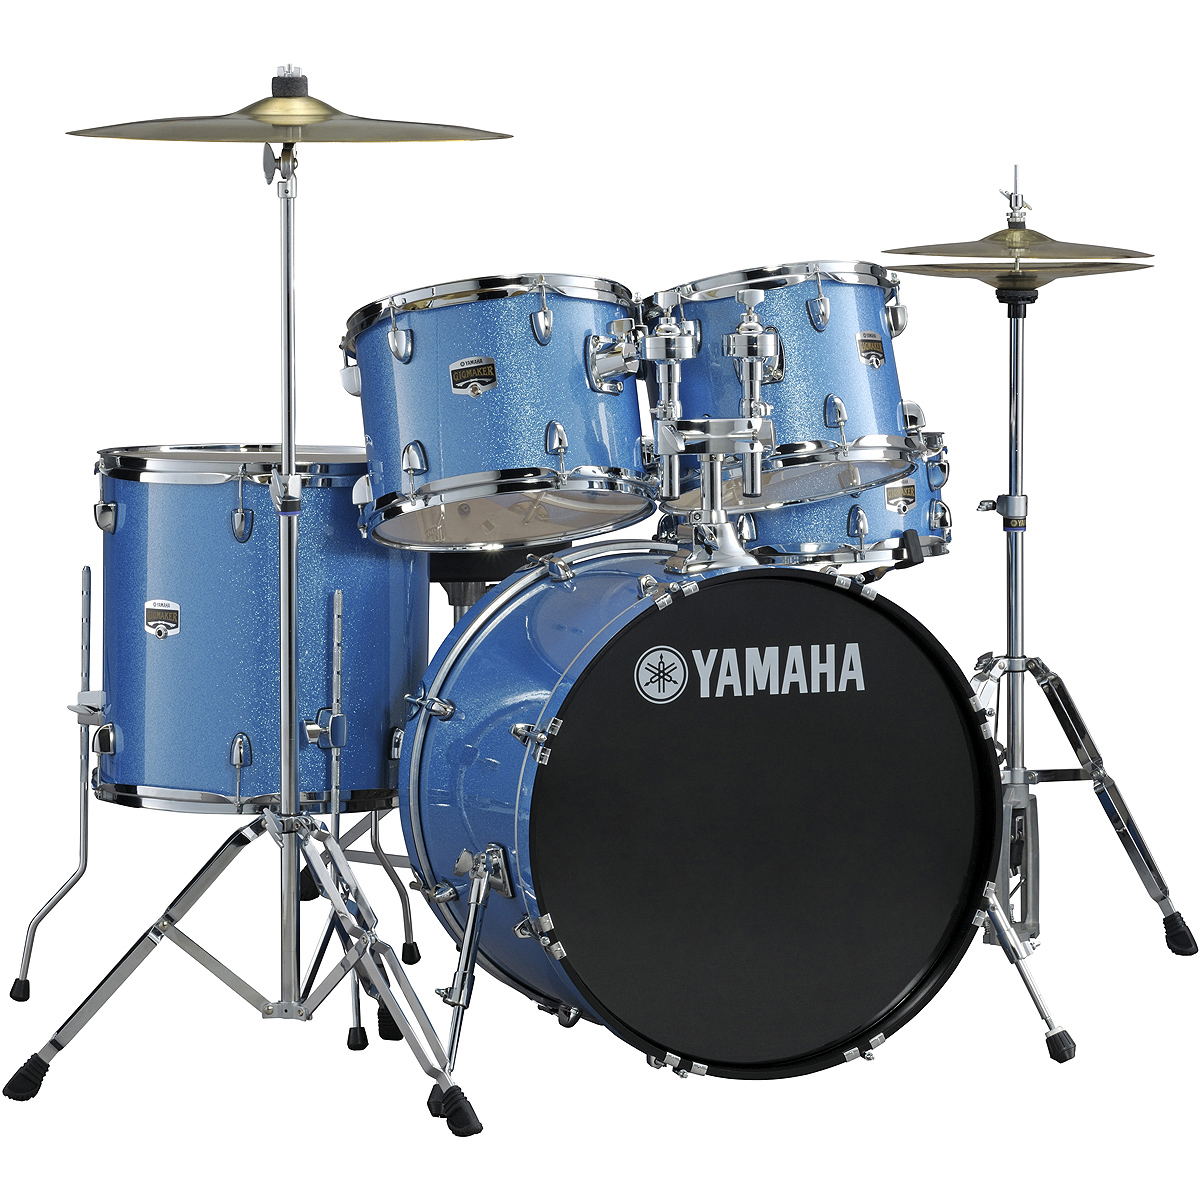 yamaha gigmaker 5 piece drum set with hardware wuhan cymbals 22 bass 12 13 16 toms 14 snare. Black Bedroom Furniture Sets. Home Design Ideas